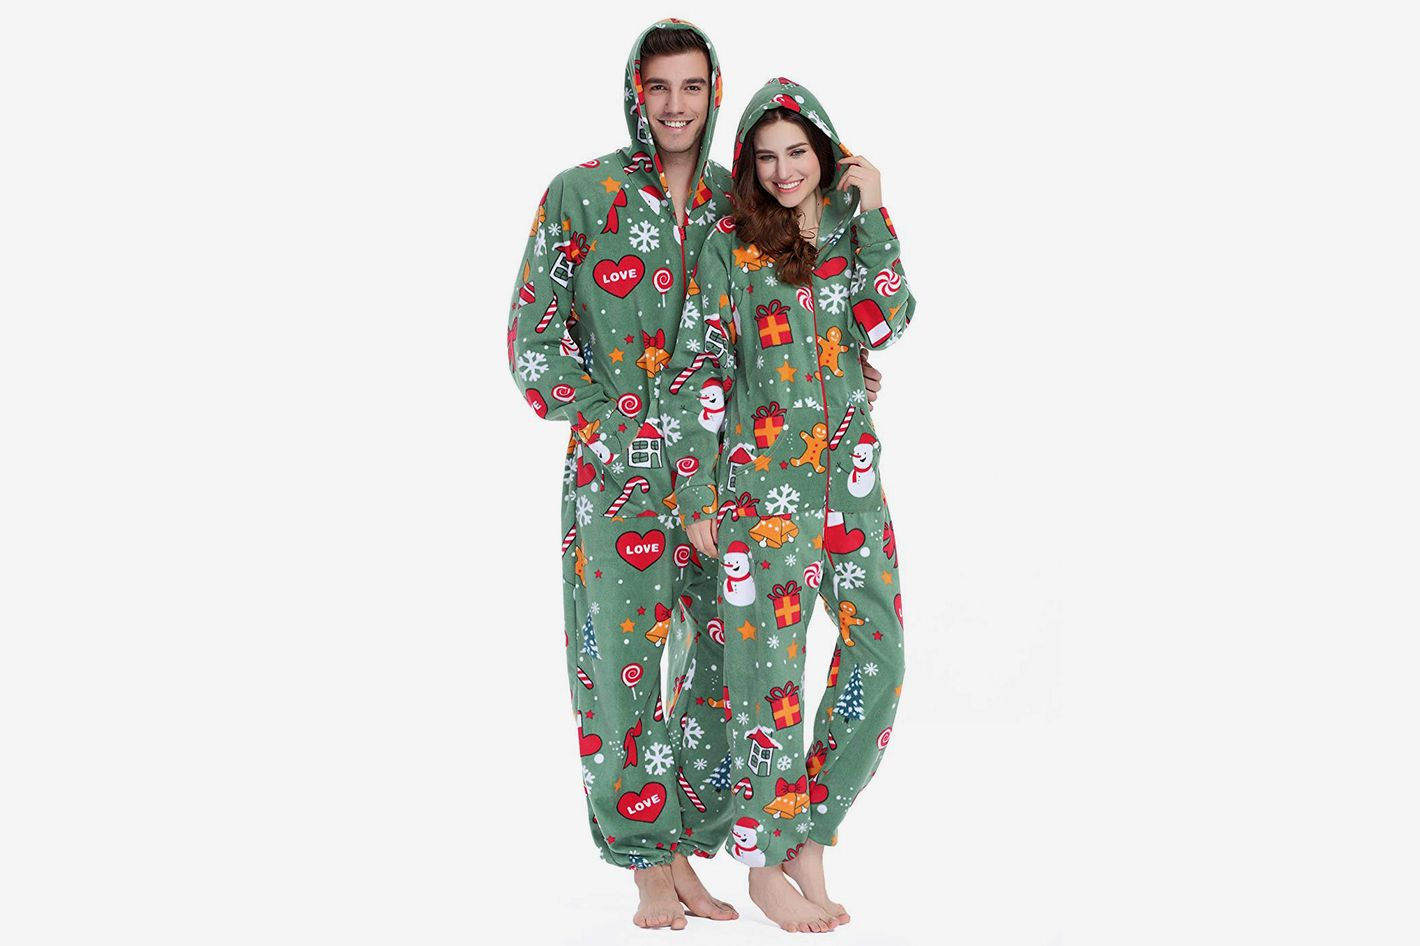 8c4e3538bbc5 XMASCOMING Unisex Hooded Fleece Onesie